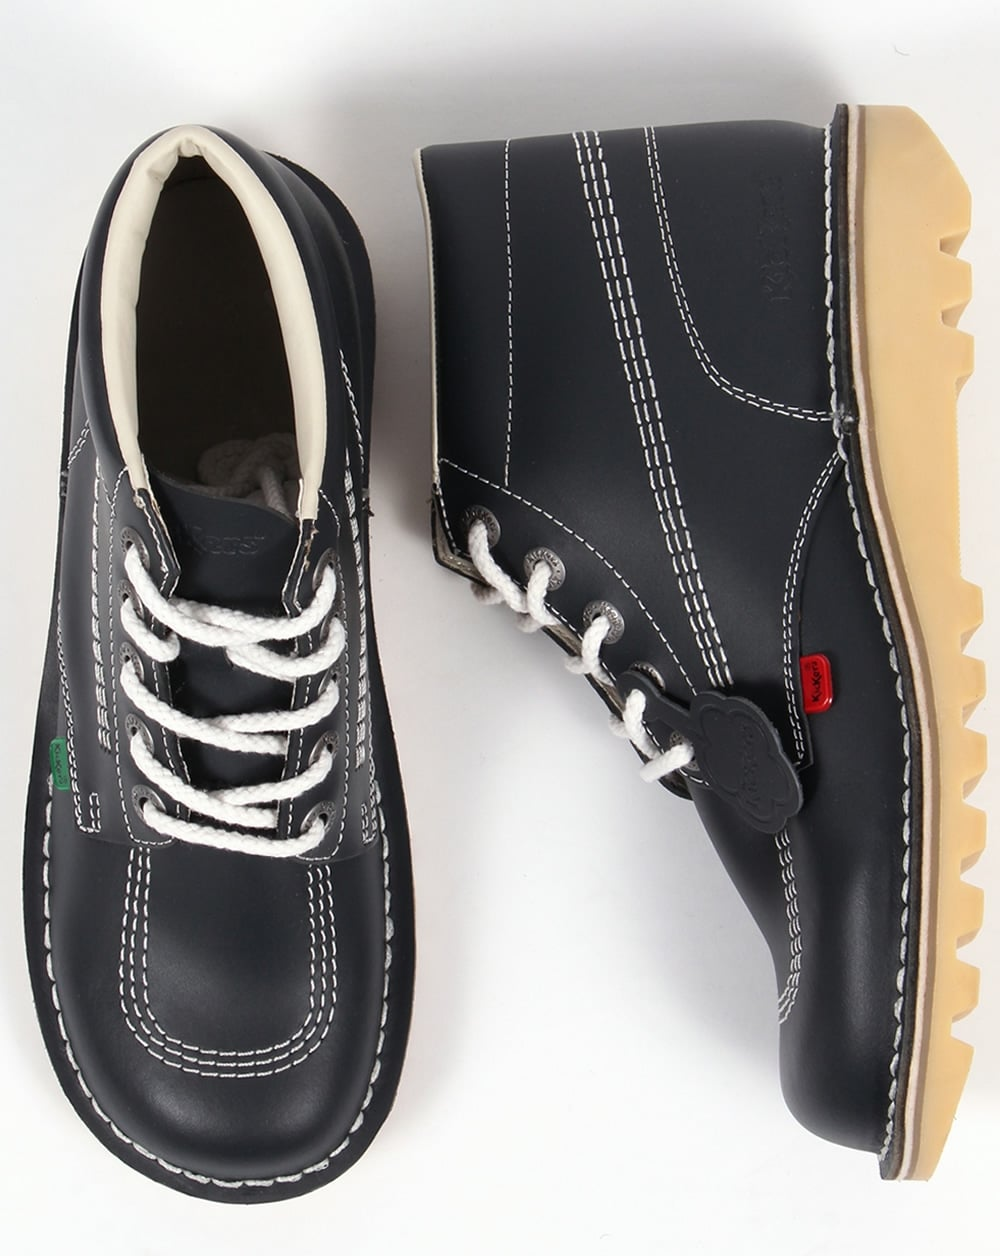 432094234c Kickers Kick Hi Boots In Leather Navy